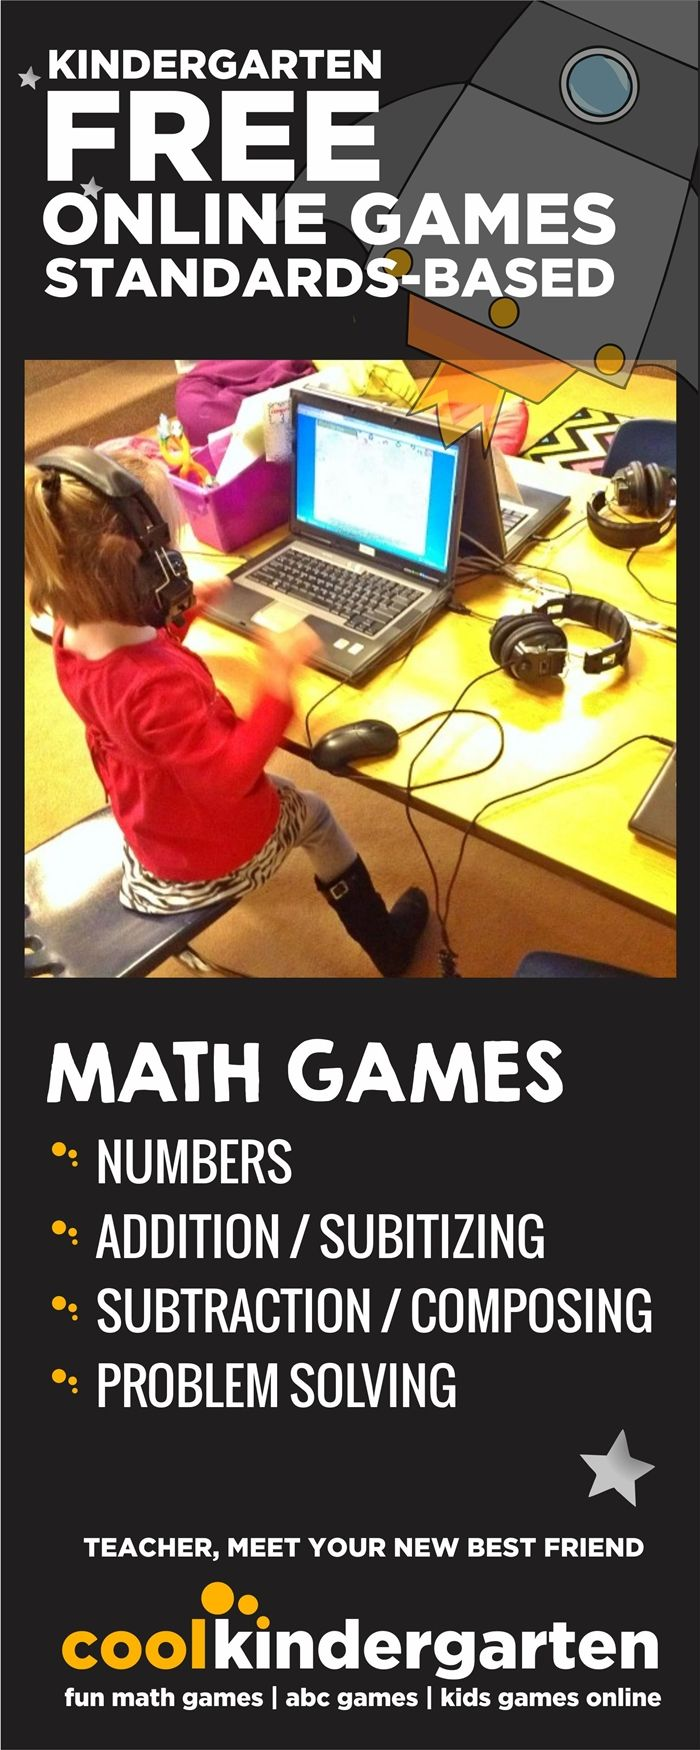 Cool math games for kindergarten - free online | Common Core Math ...